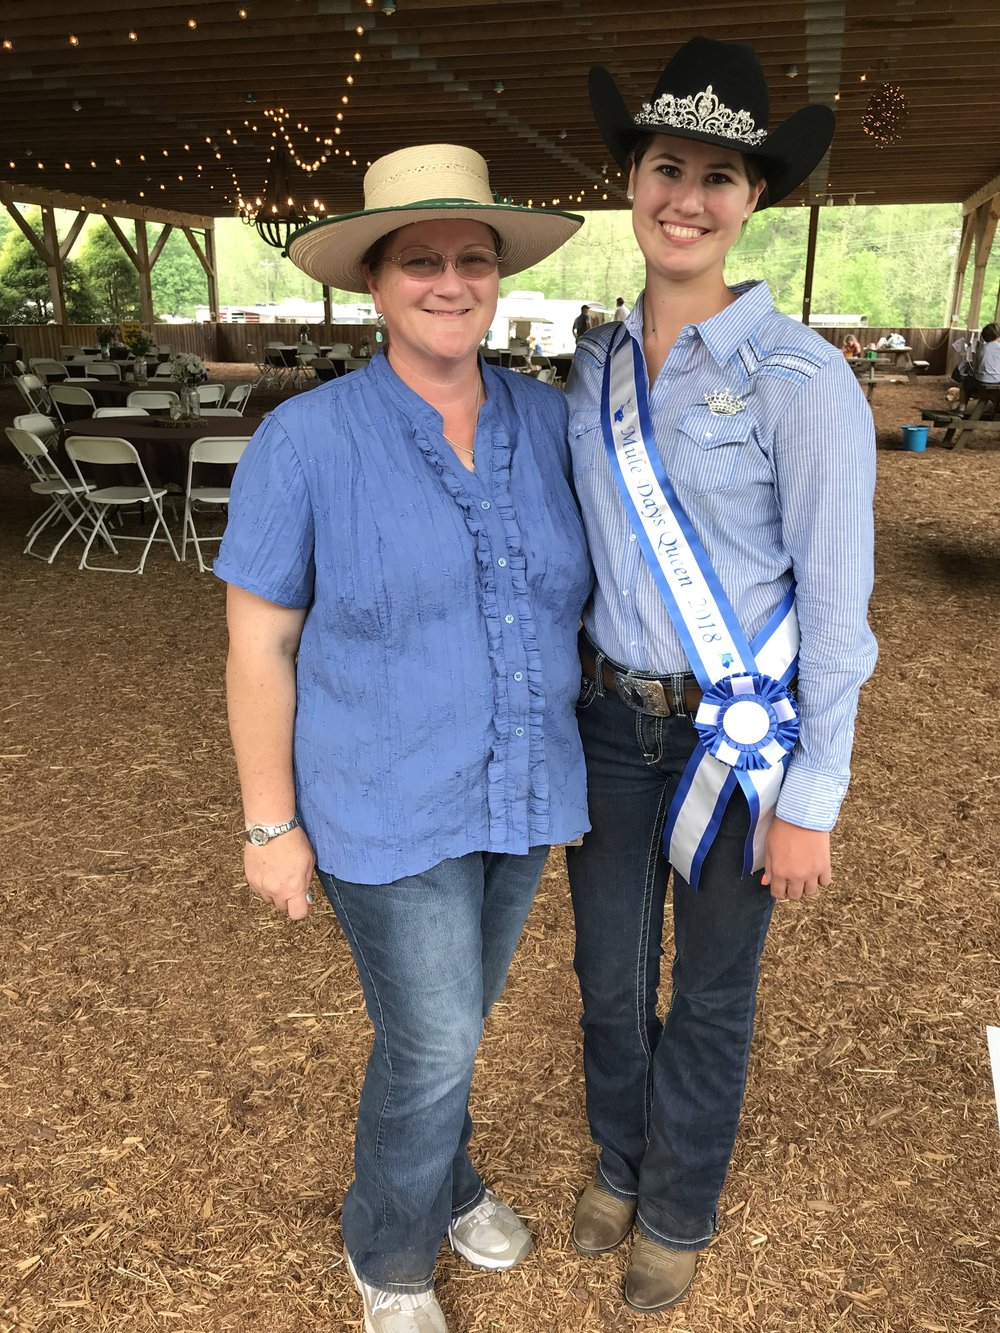 Shannon St. Clair Hoffman and Morgan Jones 2018 Mule Days Queen